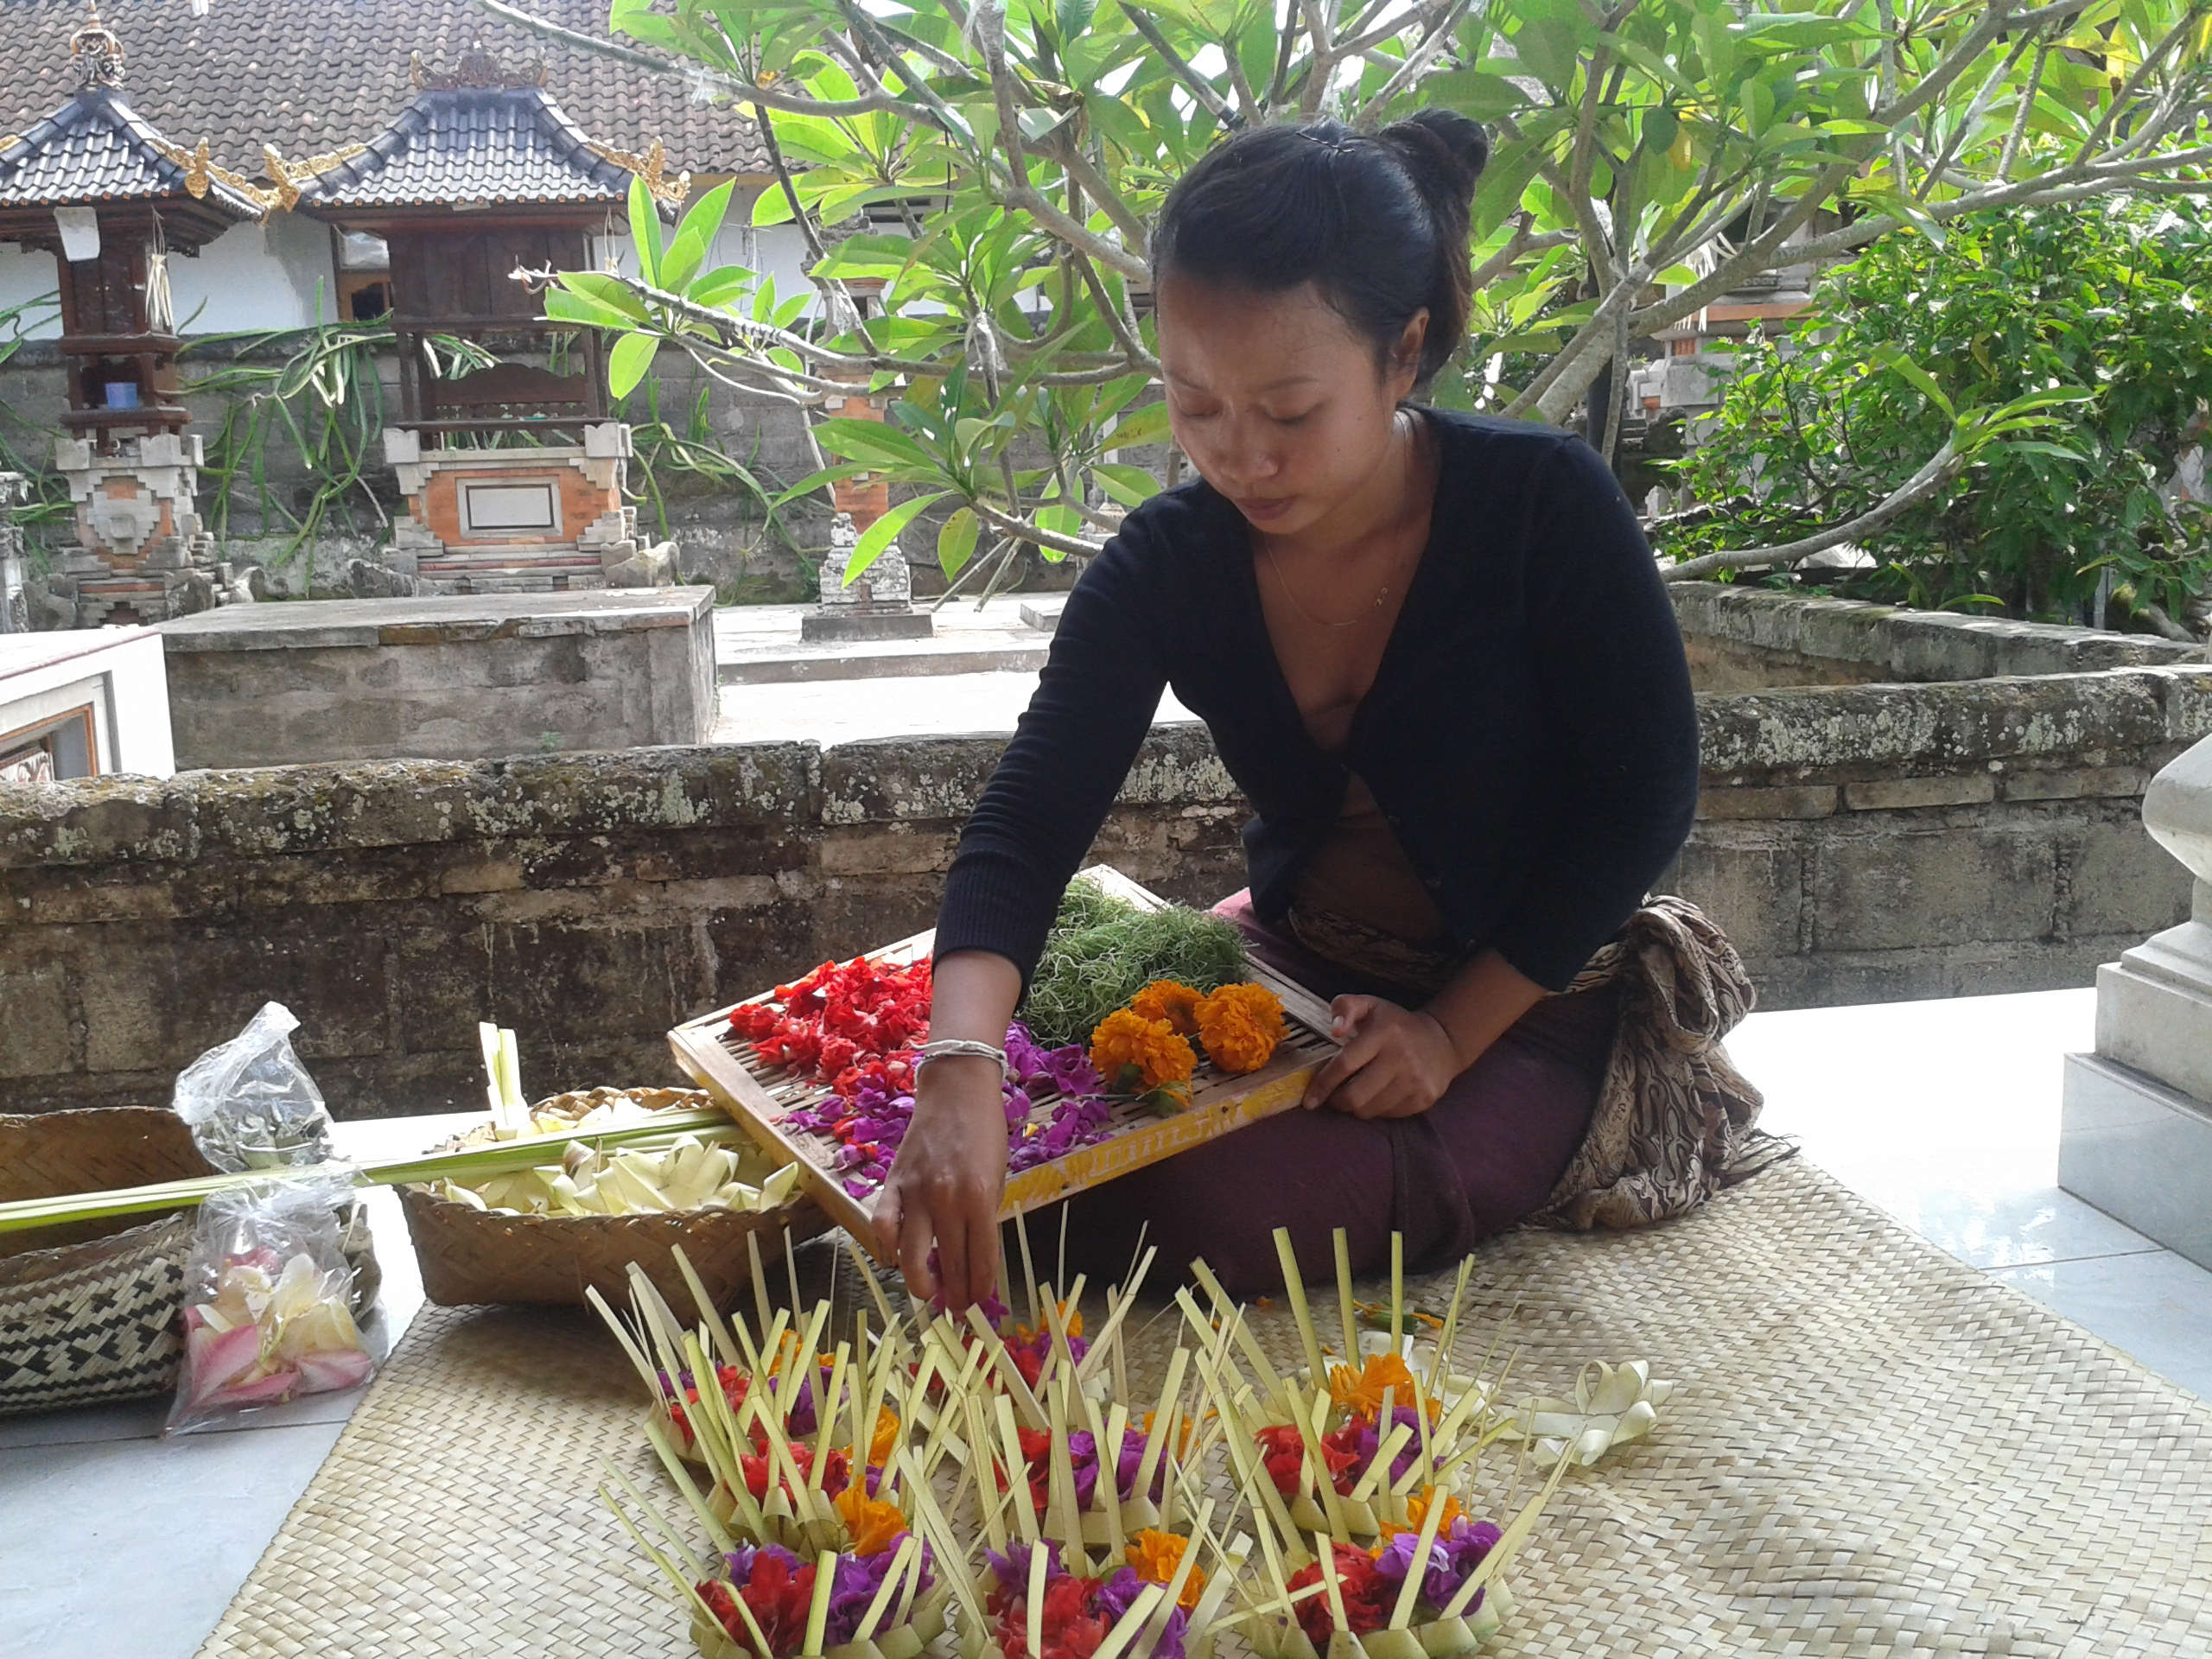 Authentic Bali Overnight Stay In A Traditional Village Voyagin Balinese Market